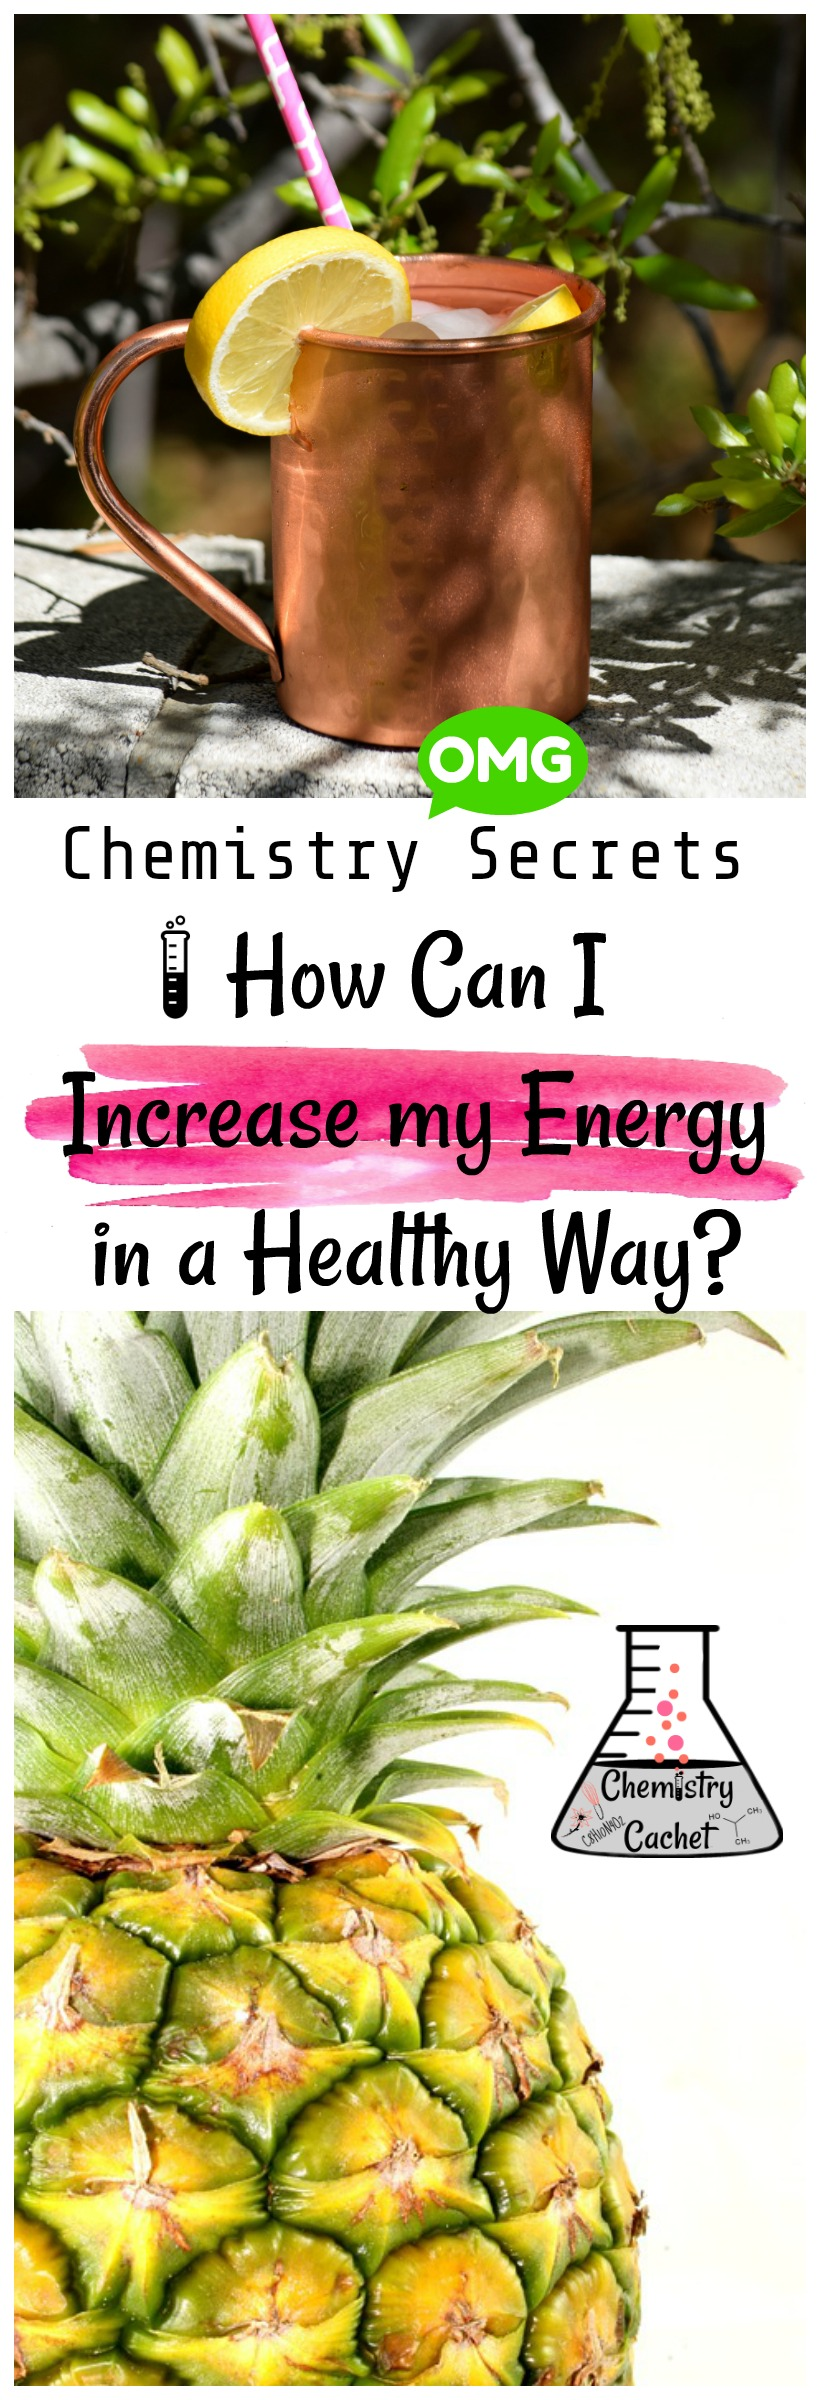 Chemistry Secrets How Can I Increase my Energy in a Healthy Way The best proven secrets for increasing energy! on chemistrycachet.com